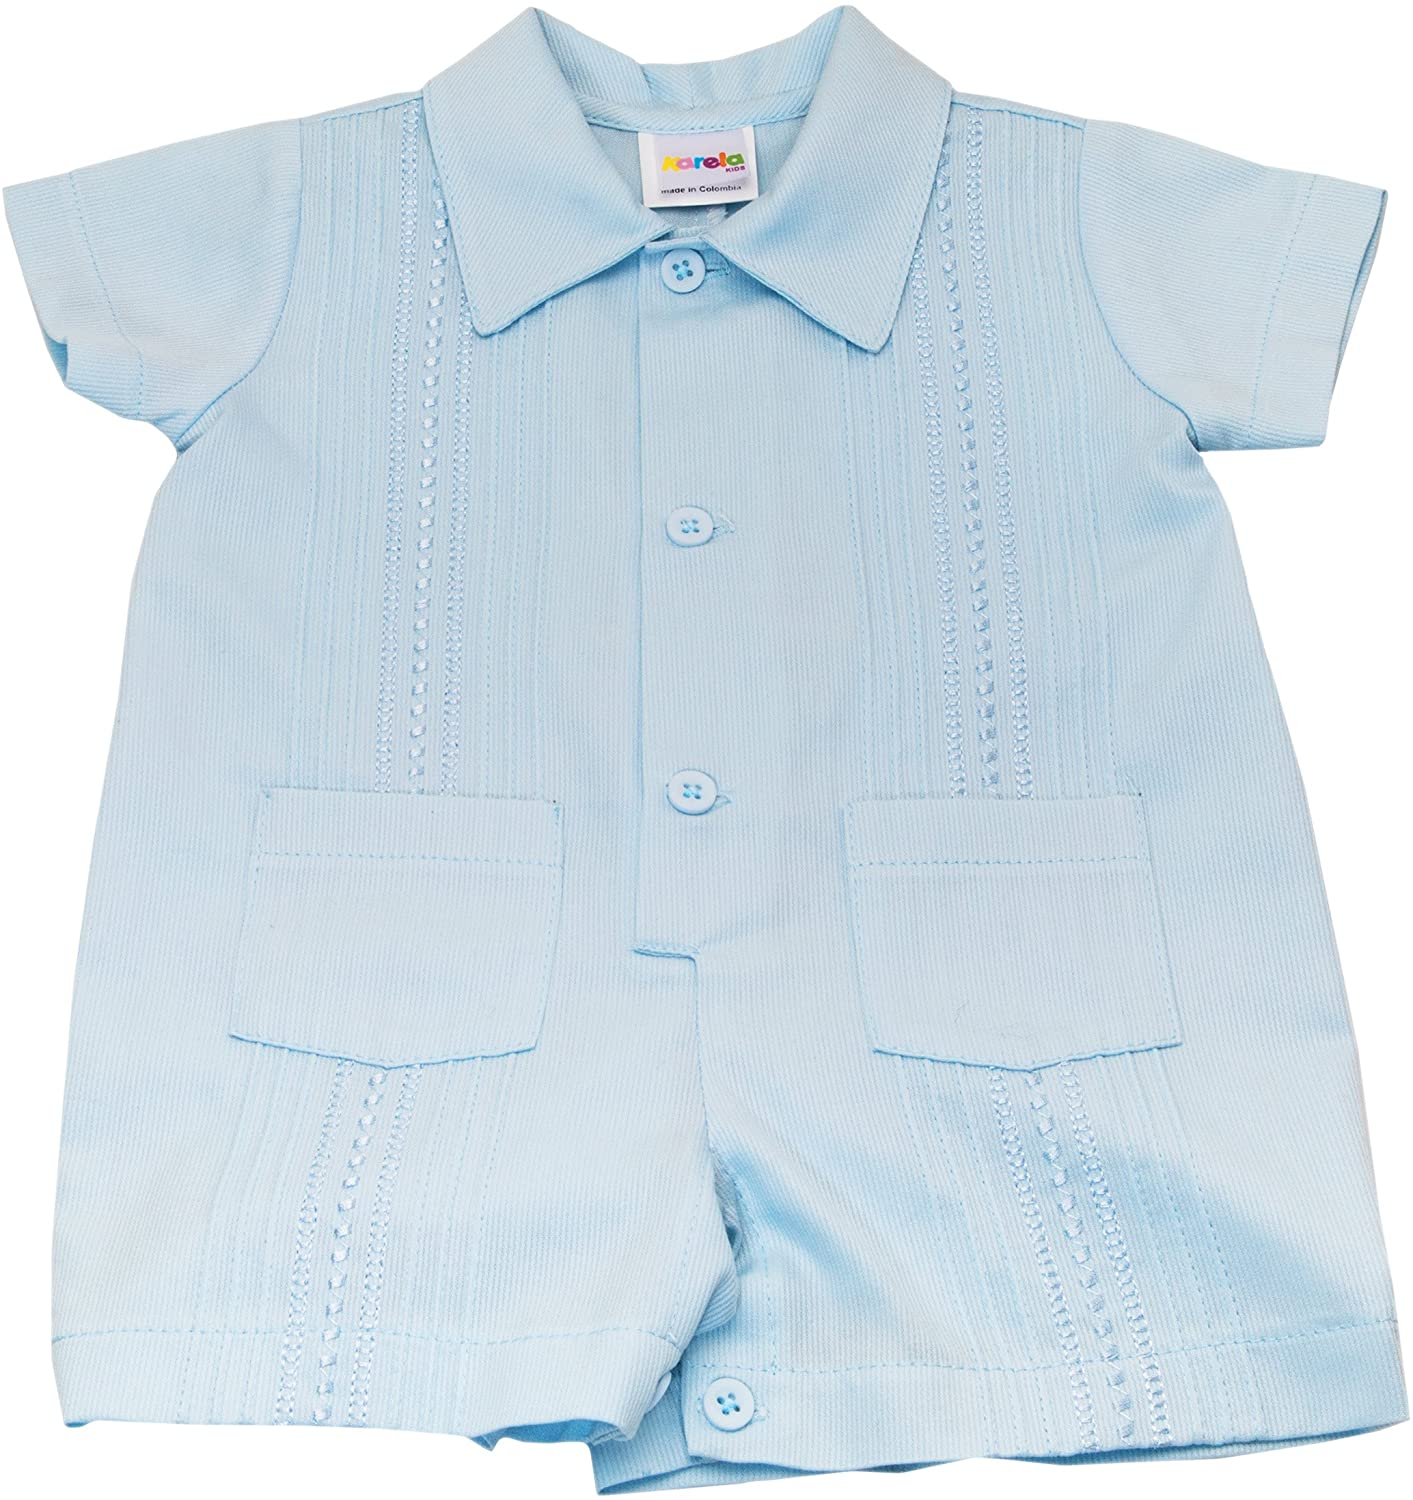 Karela Pique Blue Baby Boy Guayabera Romper Blue Embroidery with Two Small Pockets. Buttons Between Legs